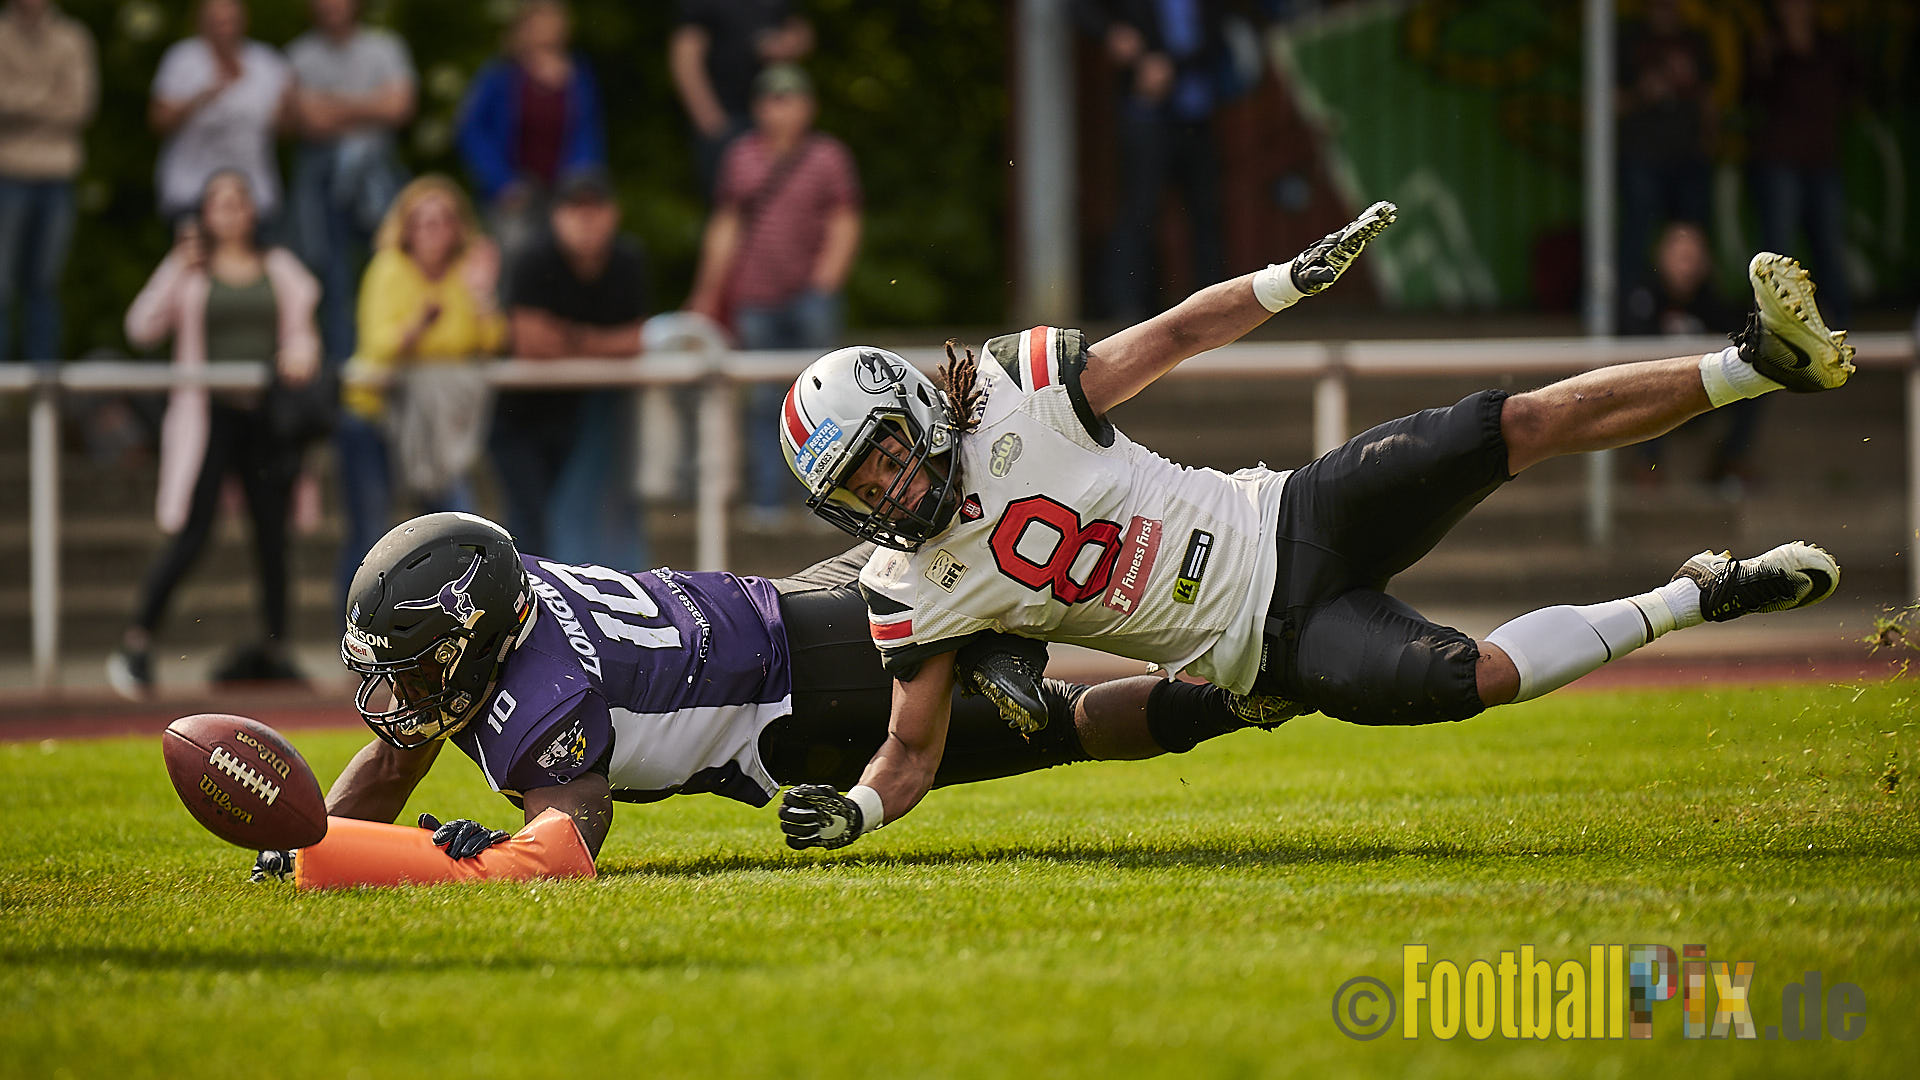 18.05.2019 GFL2: Langenfeld Longhorns vs. Hamburg Huskies (35:34)